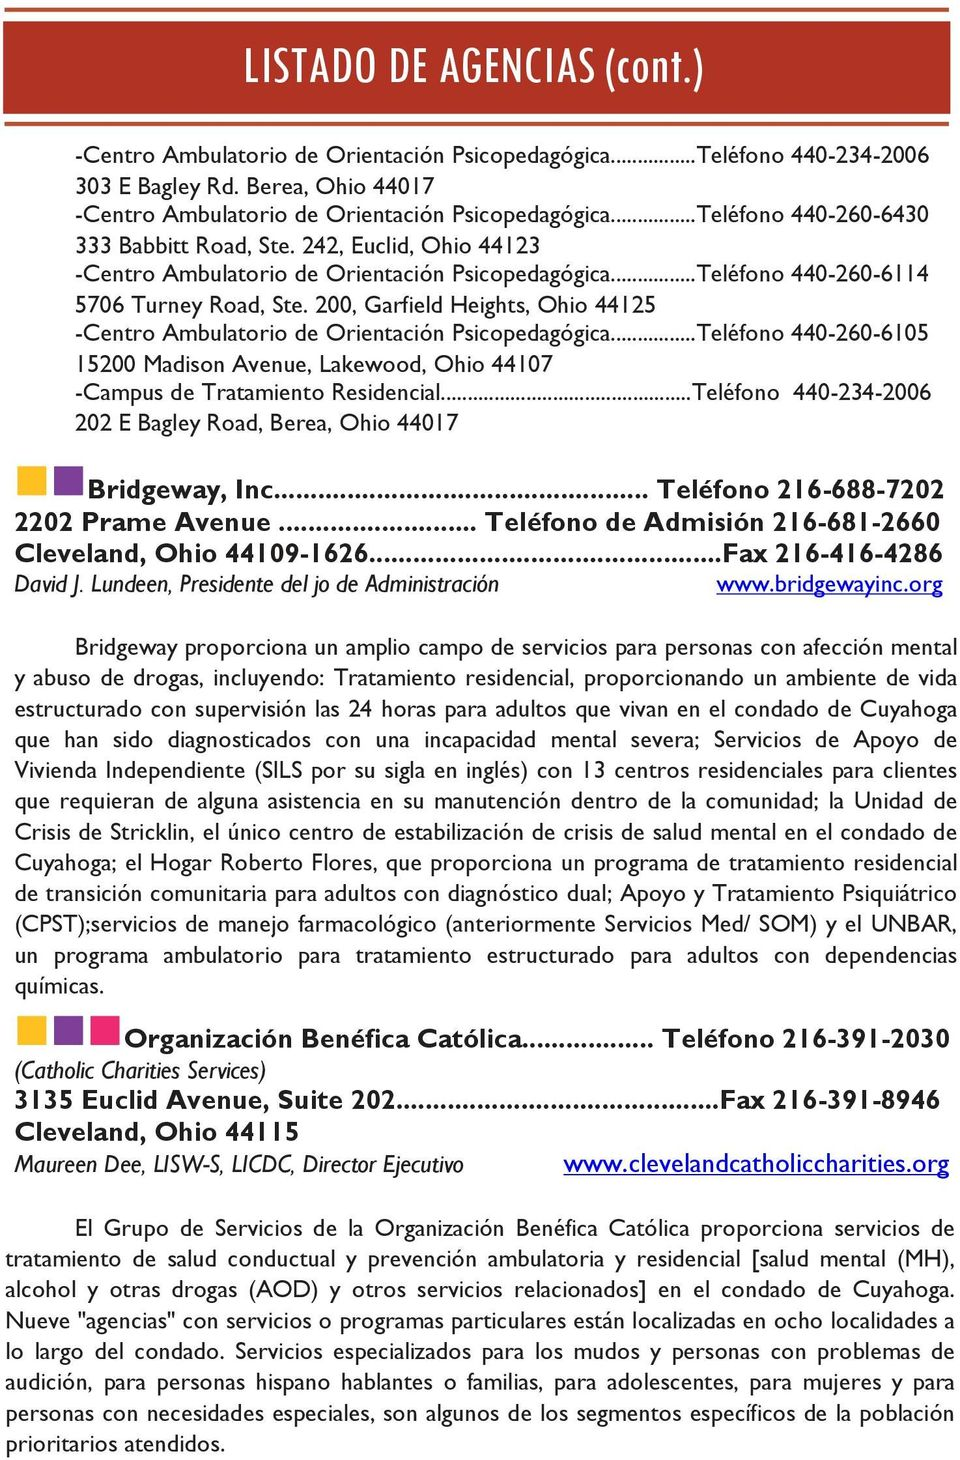 200, Garfield Heights, Ohio 44125 -Centro Ambulatorio de Orientación Psicopedagógica...Teléfono 440-260-6105 15200 Madison Avenue, Lakewood, Ohio 44107 -Campus de Tratamiento Residencial.